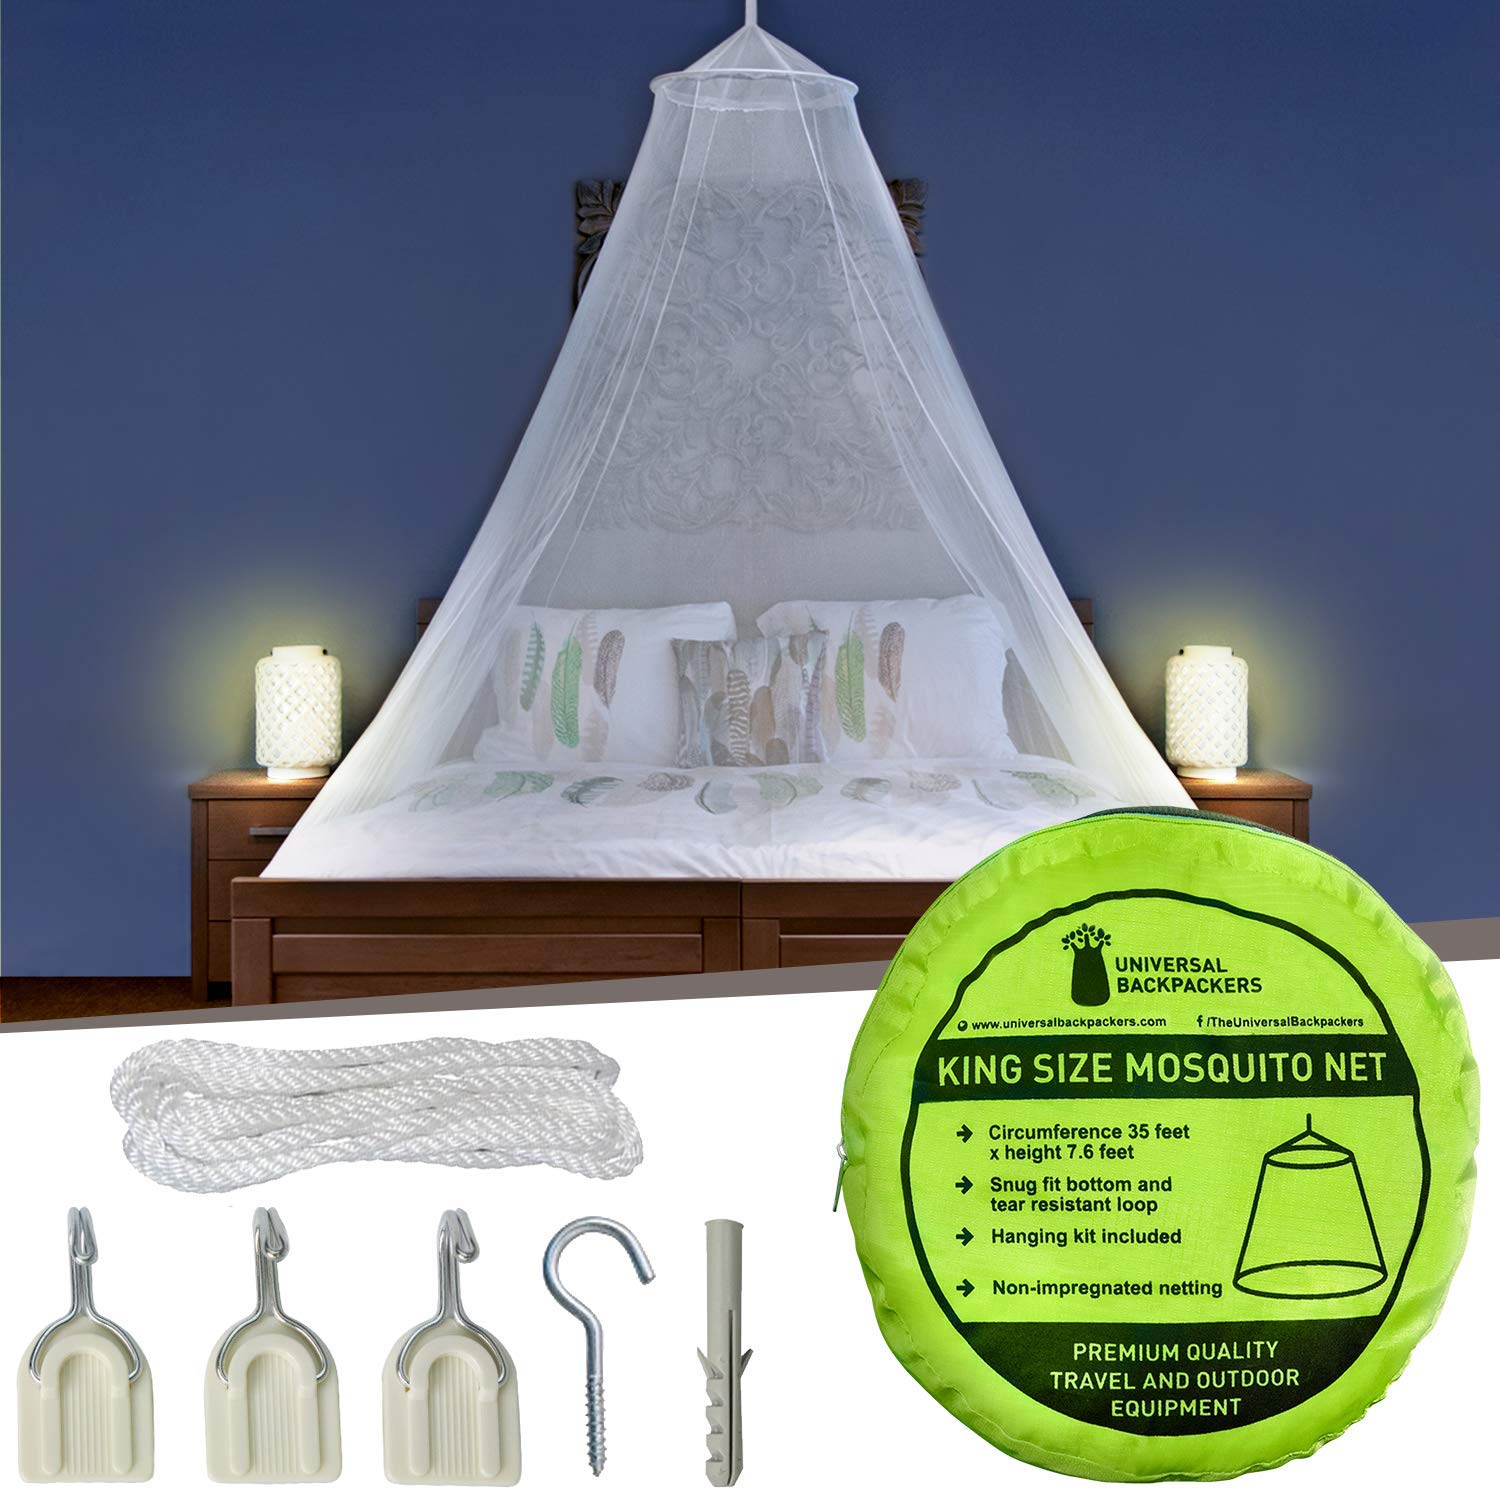 Universal Backpackers Mosquito Net